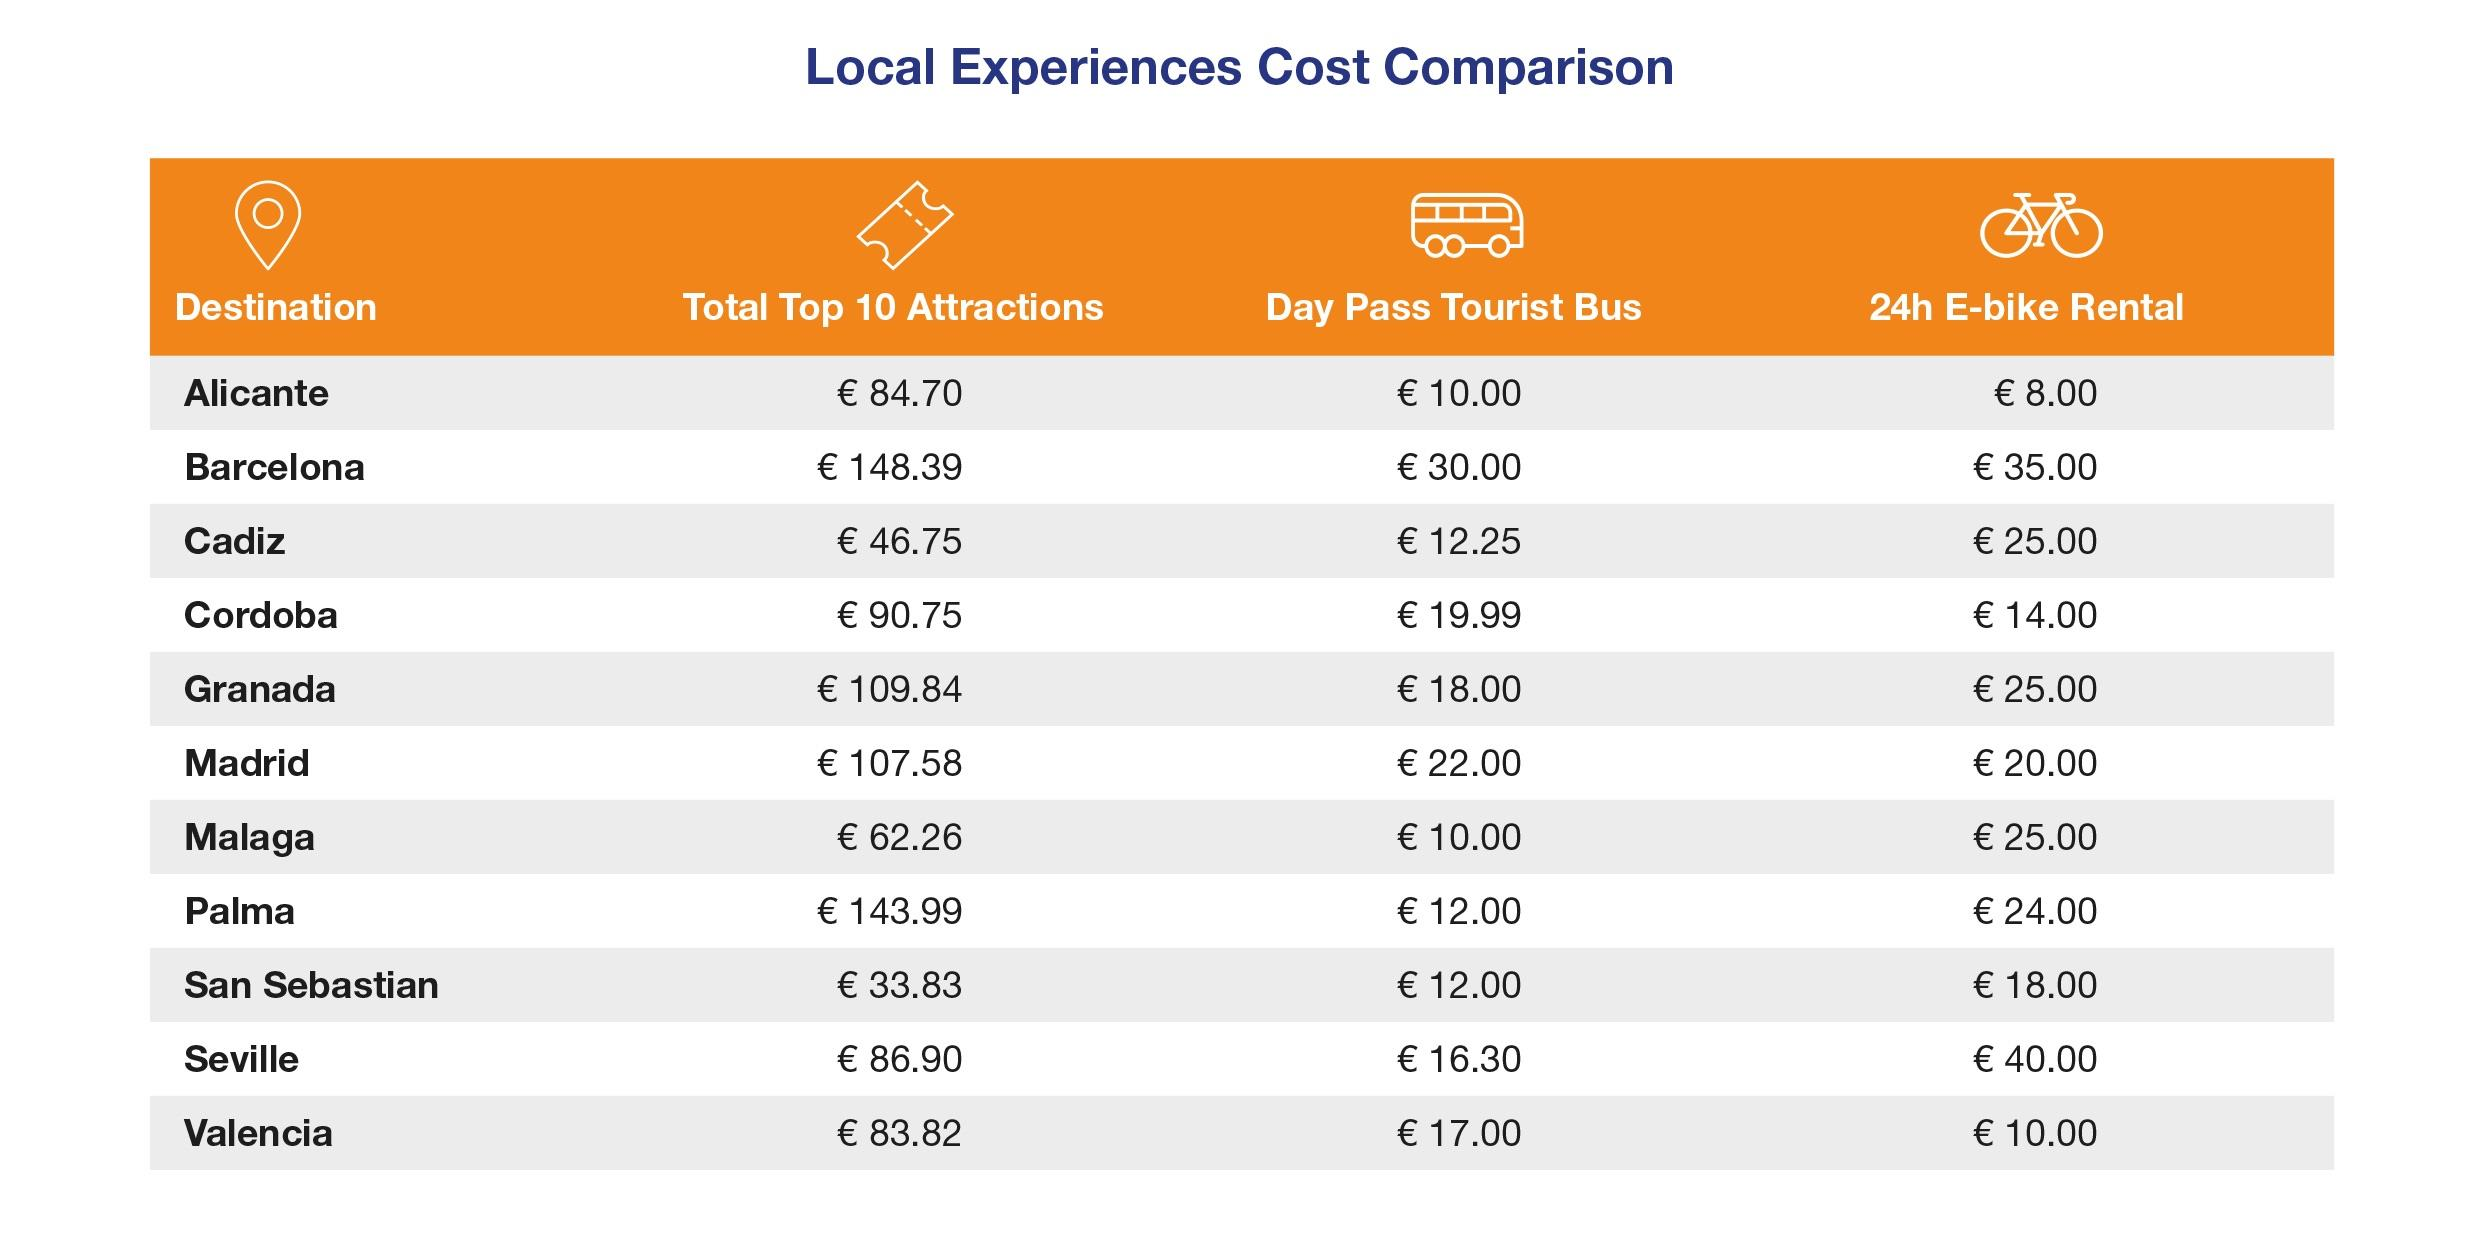 Local experiences costs comparison